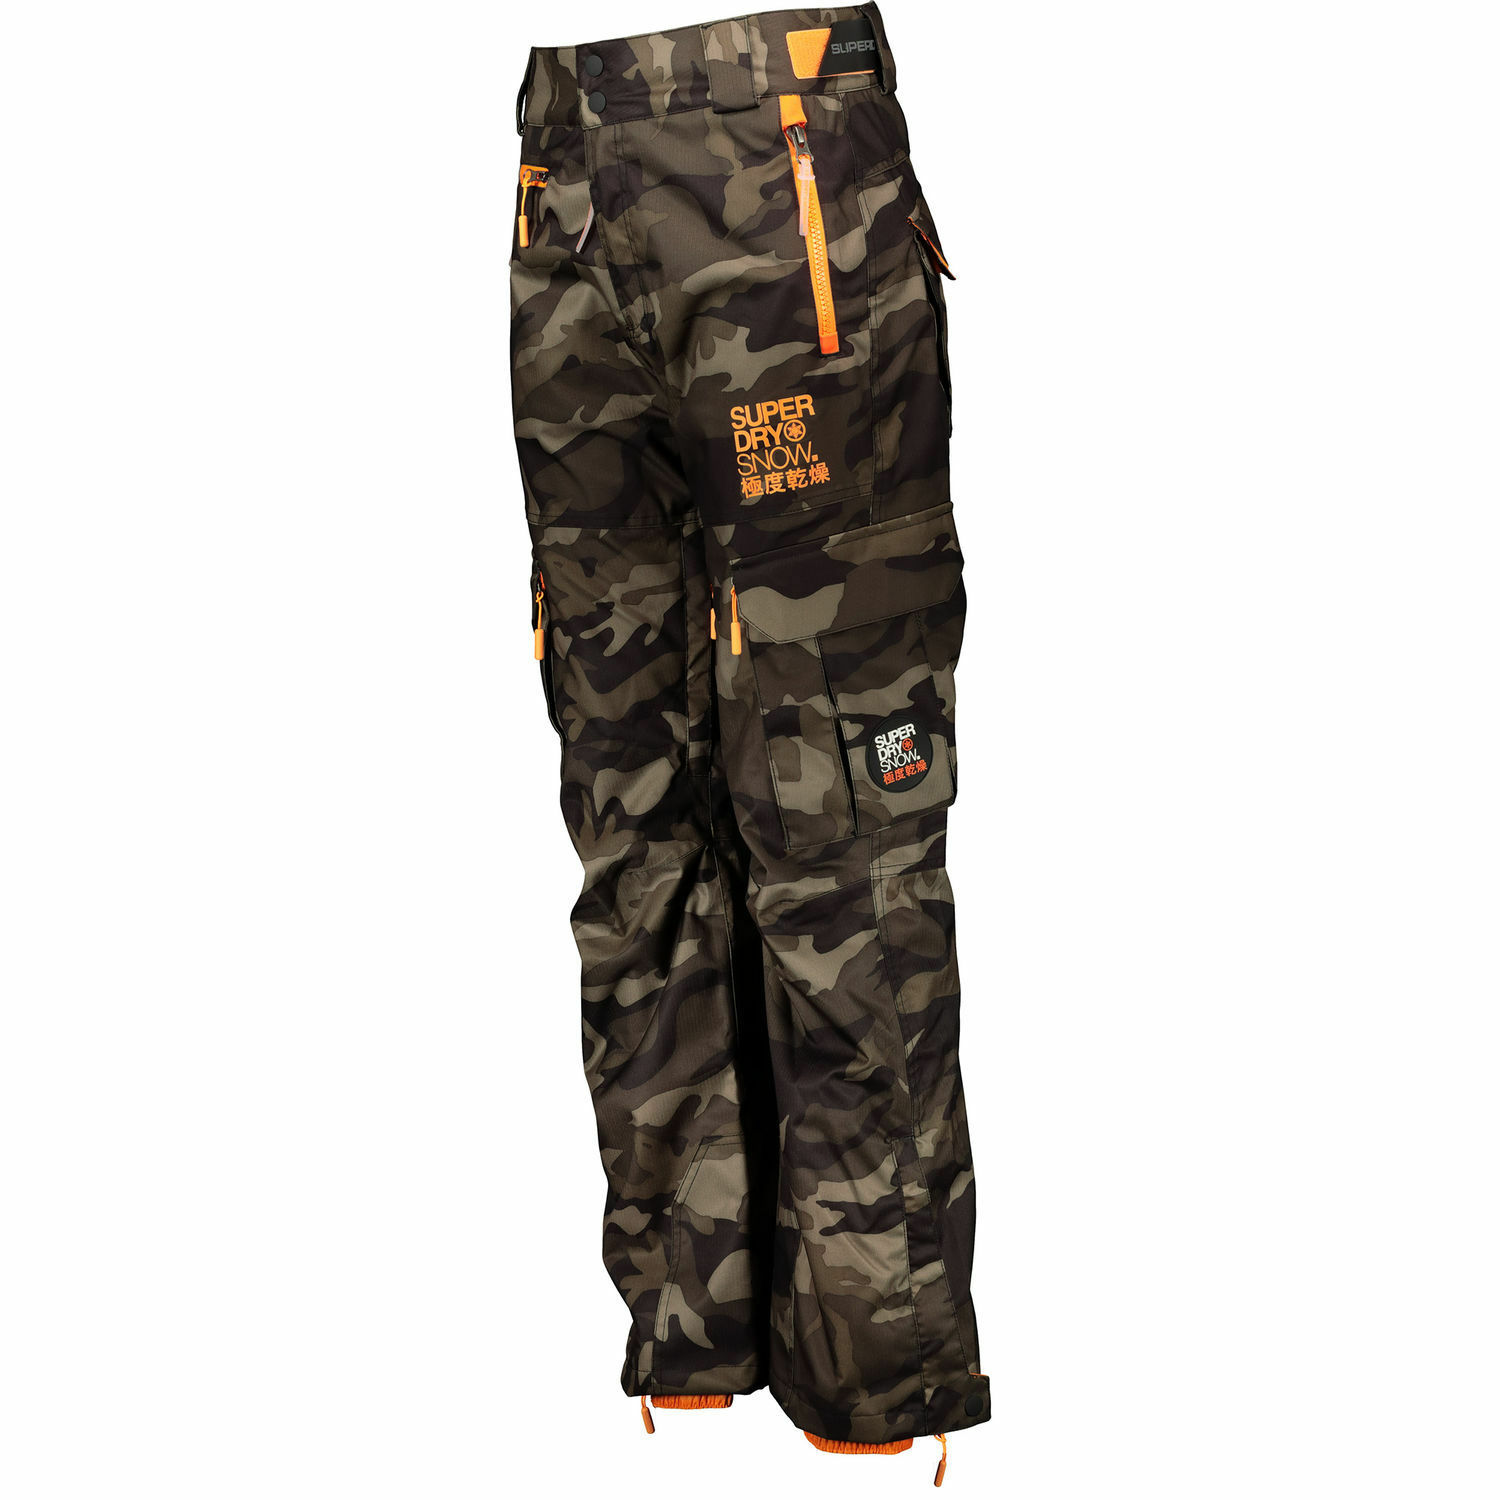 SUPERDRY Men's Snow Ski Trousers, Green Camouflage, sizes S M L